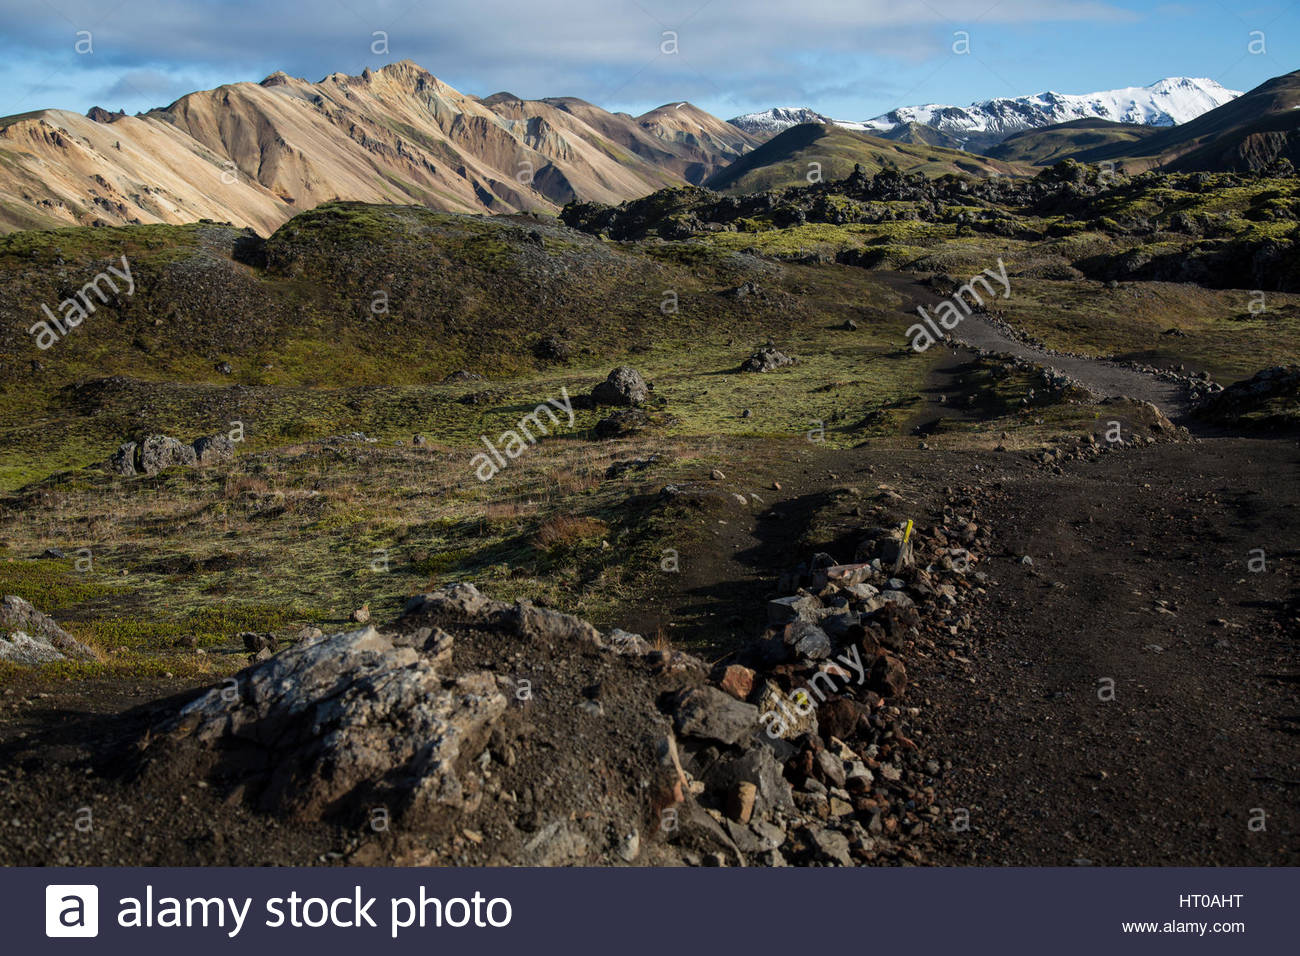 Iceland Highlands Snow Mountains and Moss - Stock Image